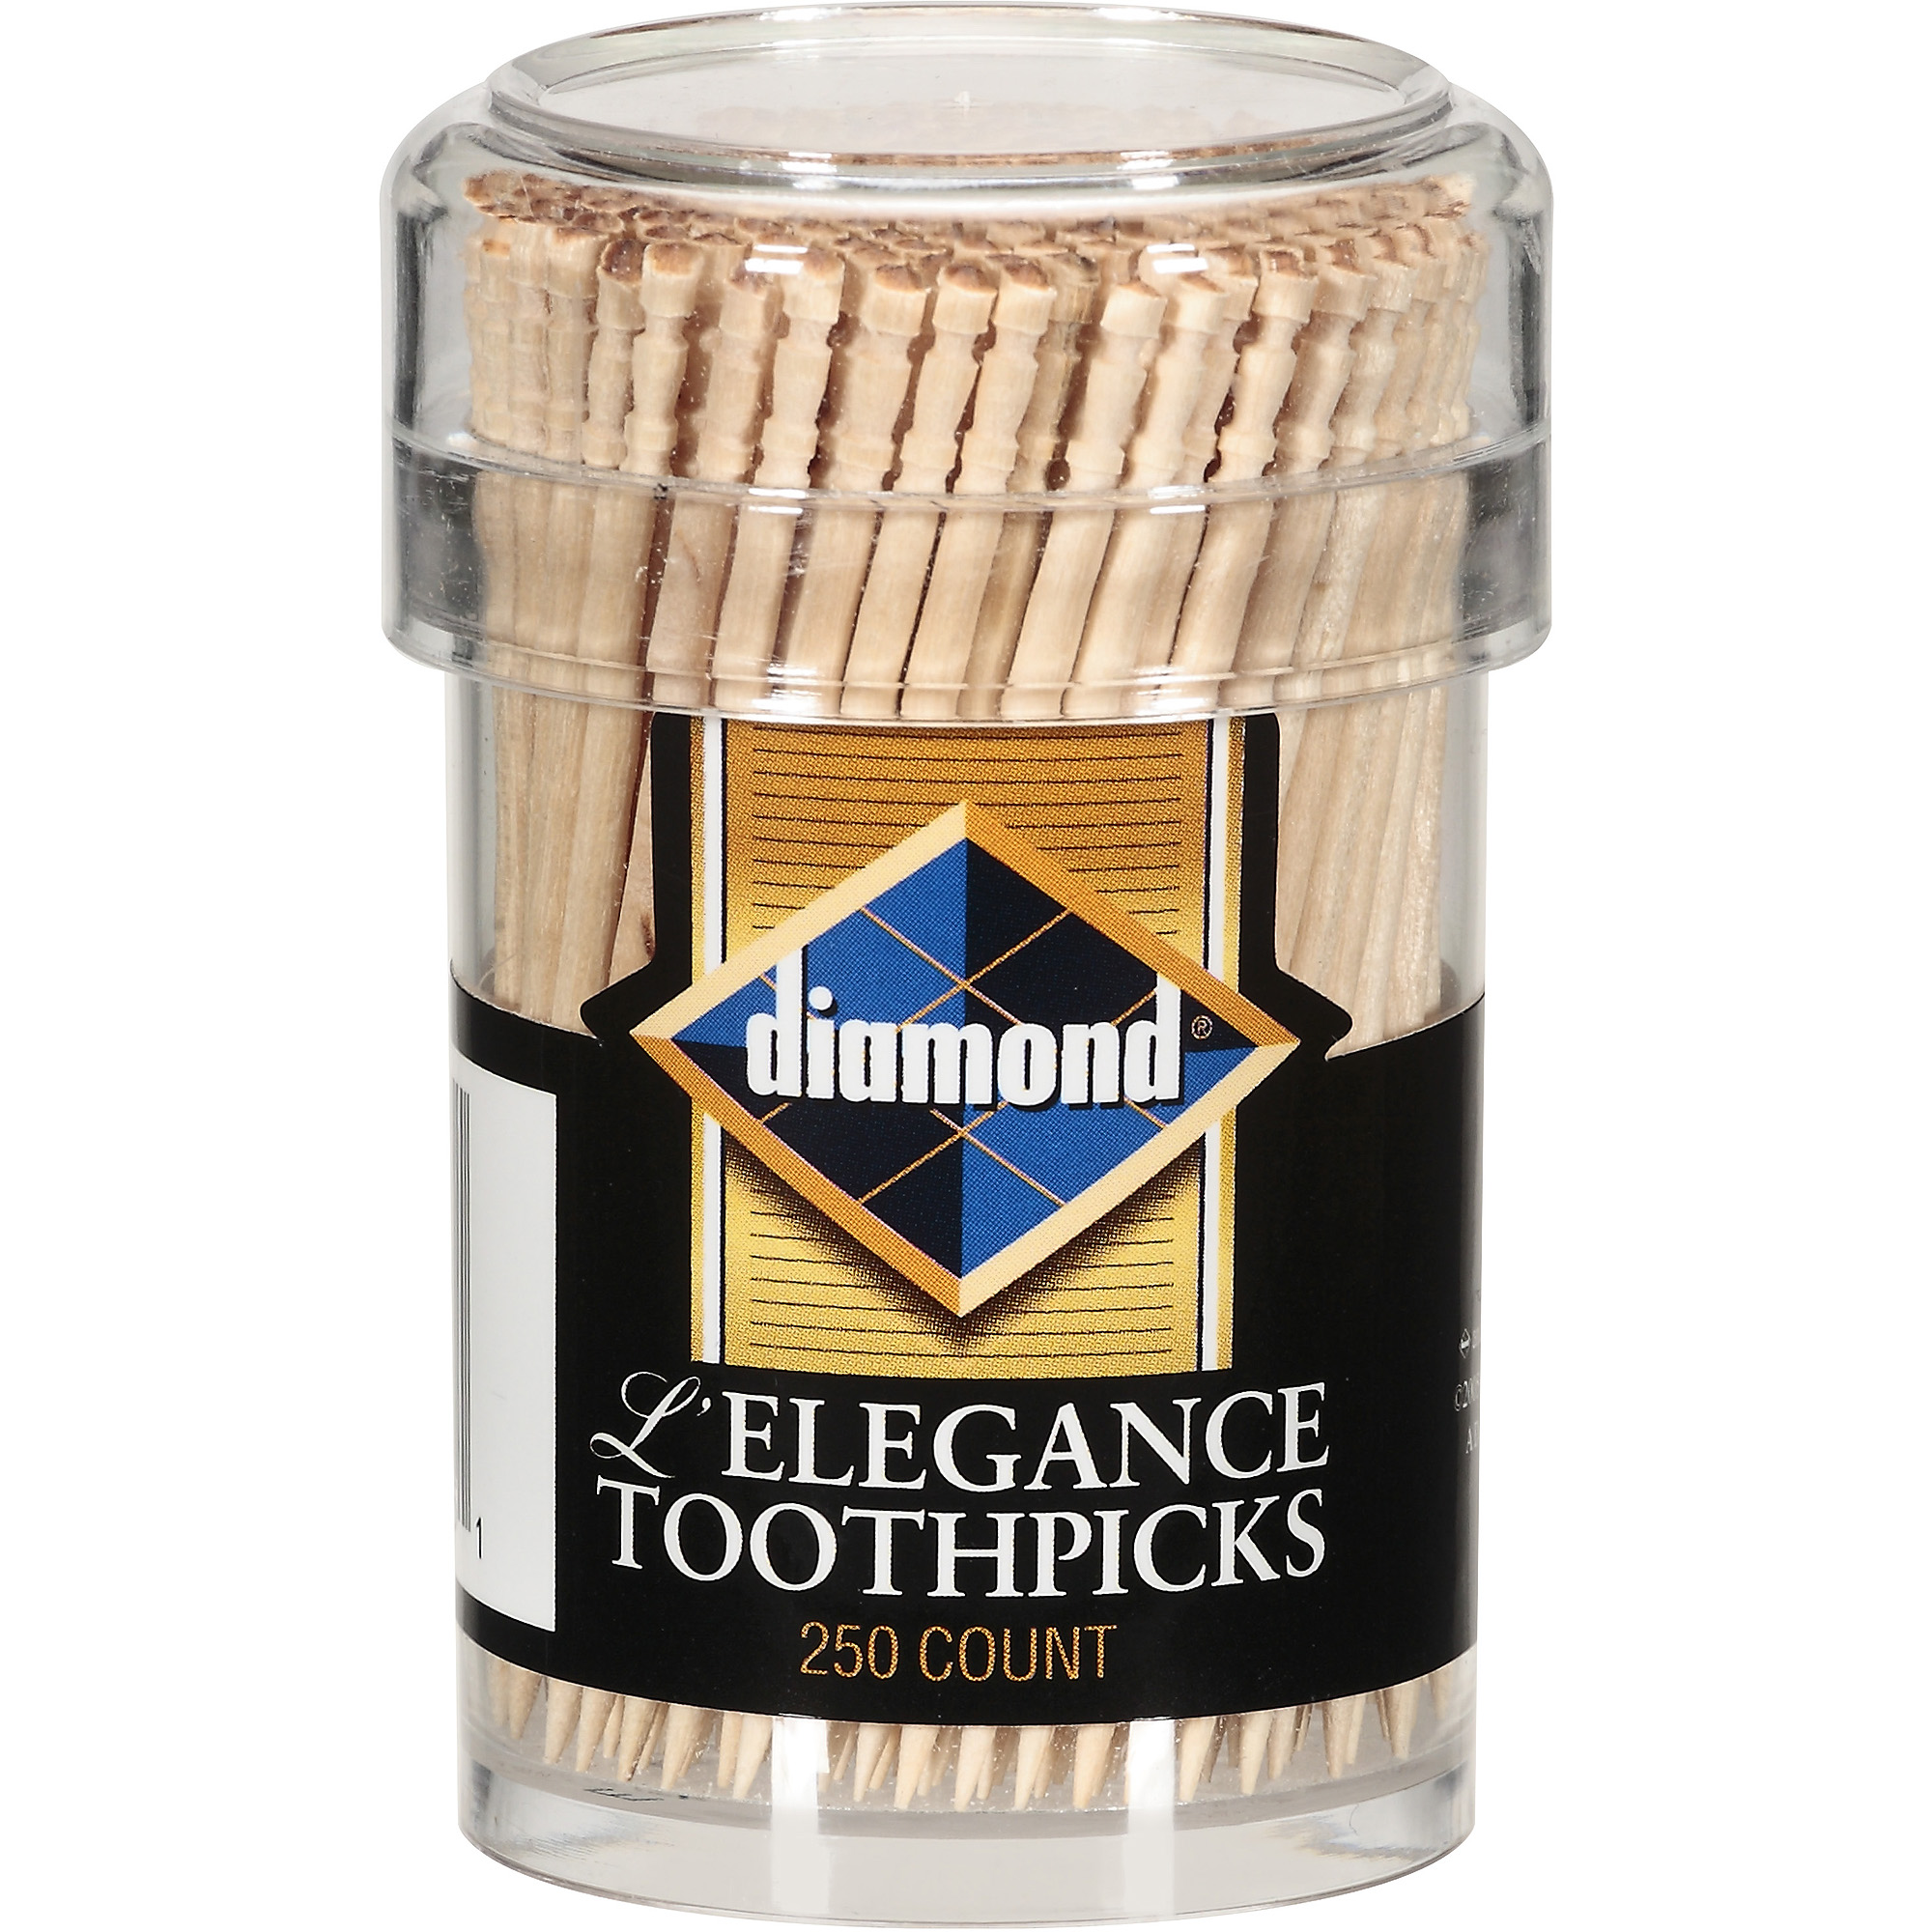 Diamond L'Elegance Toothpicks, 250 count